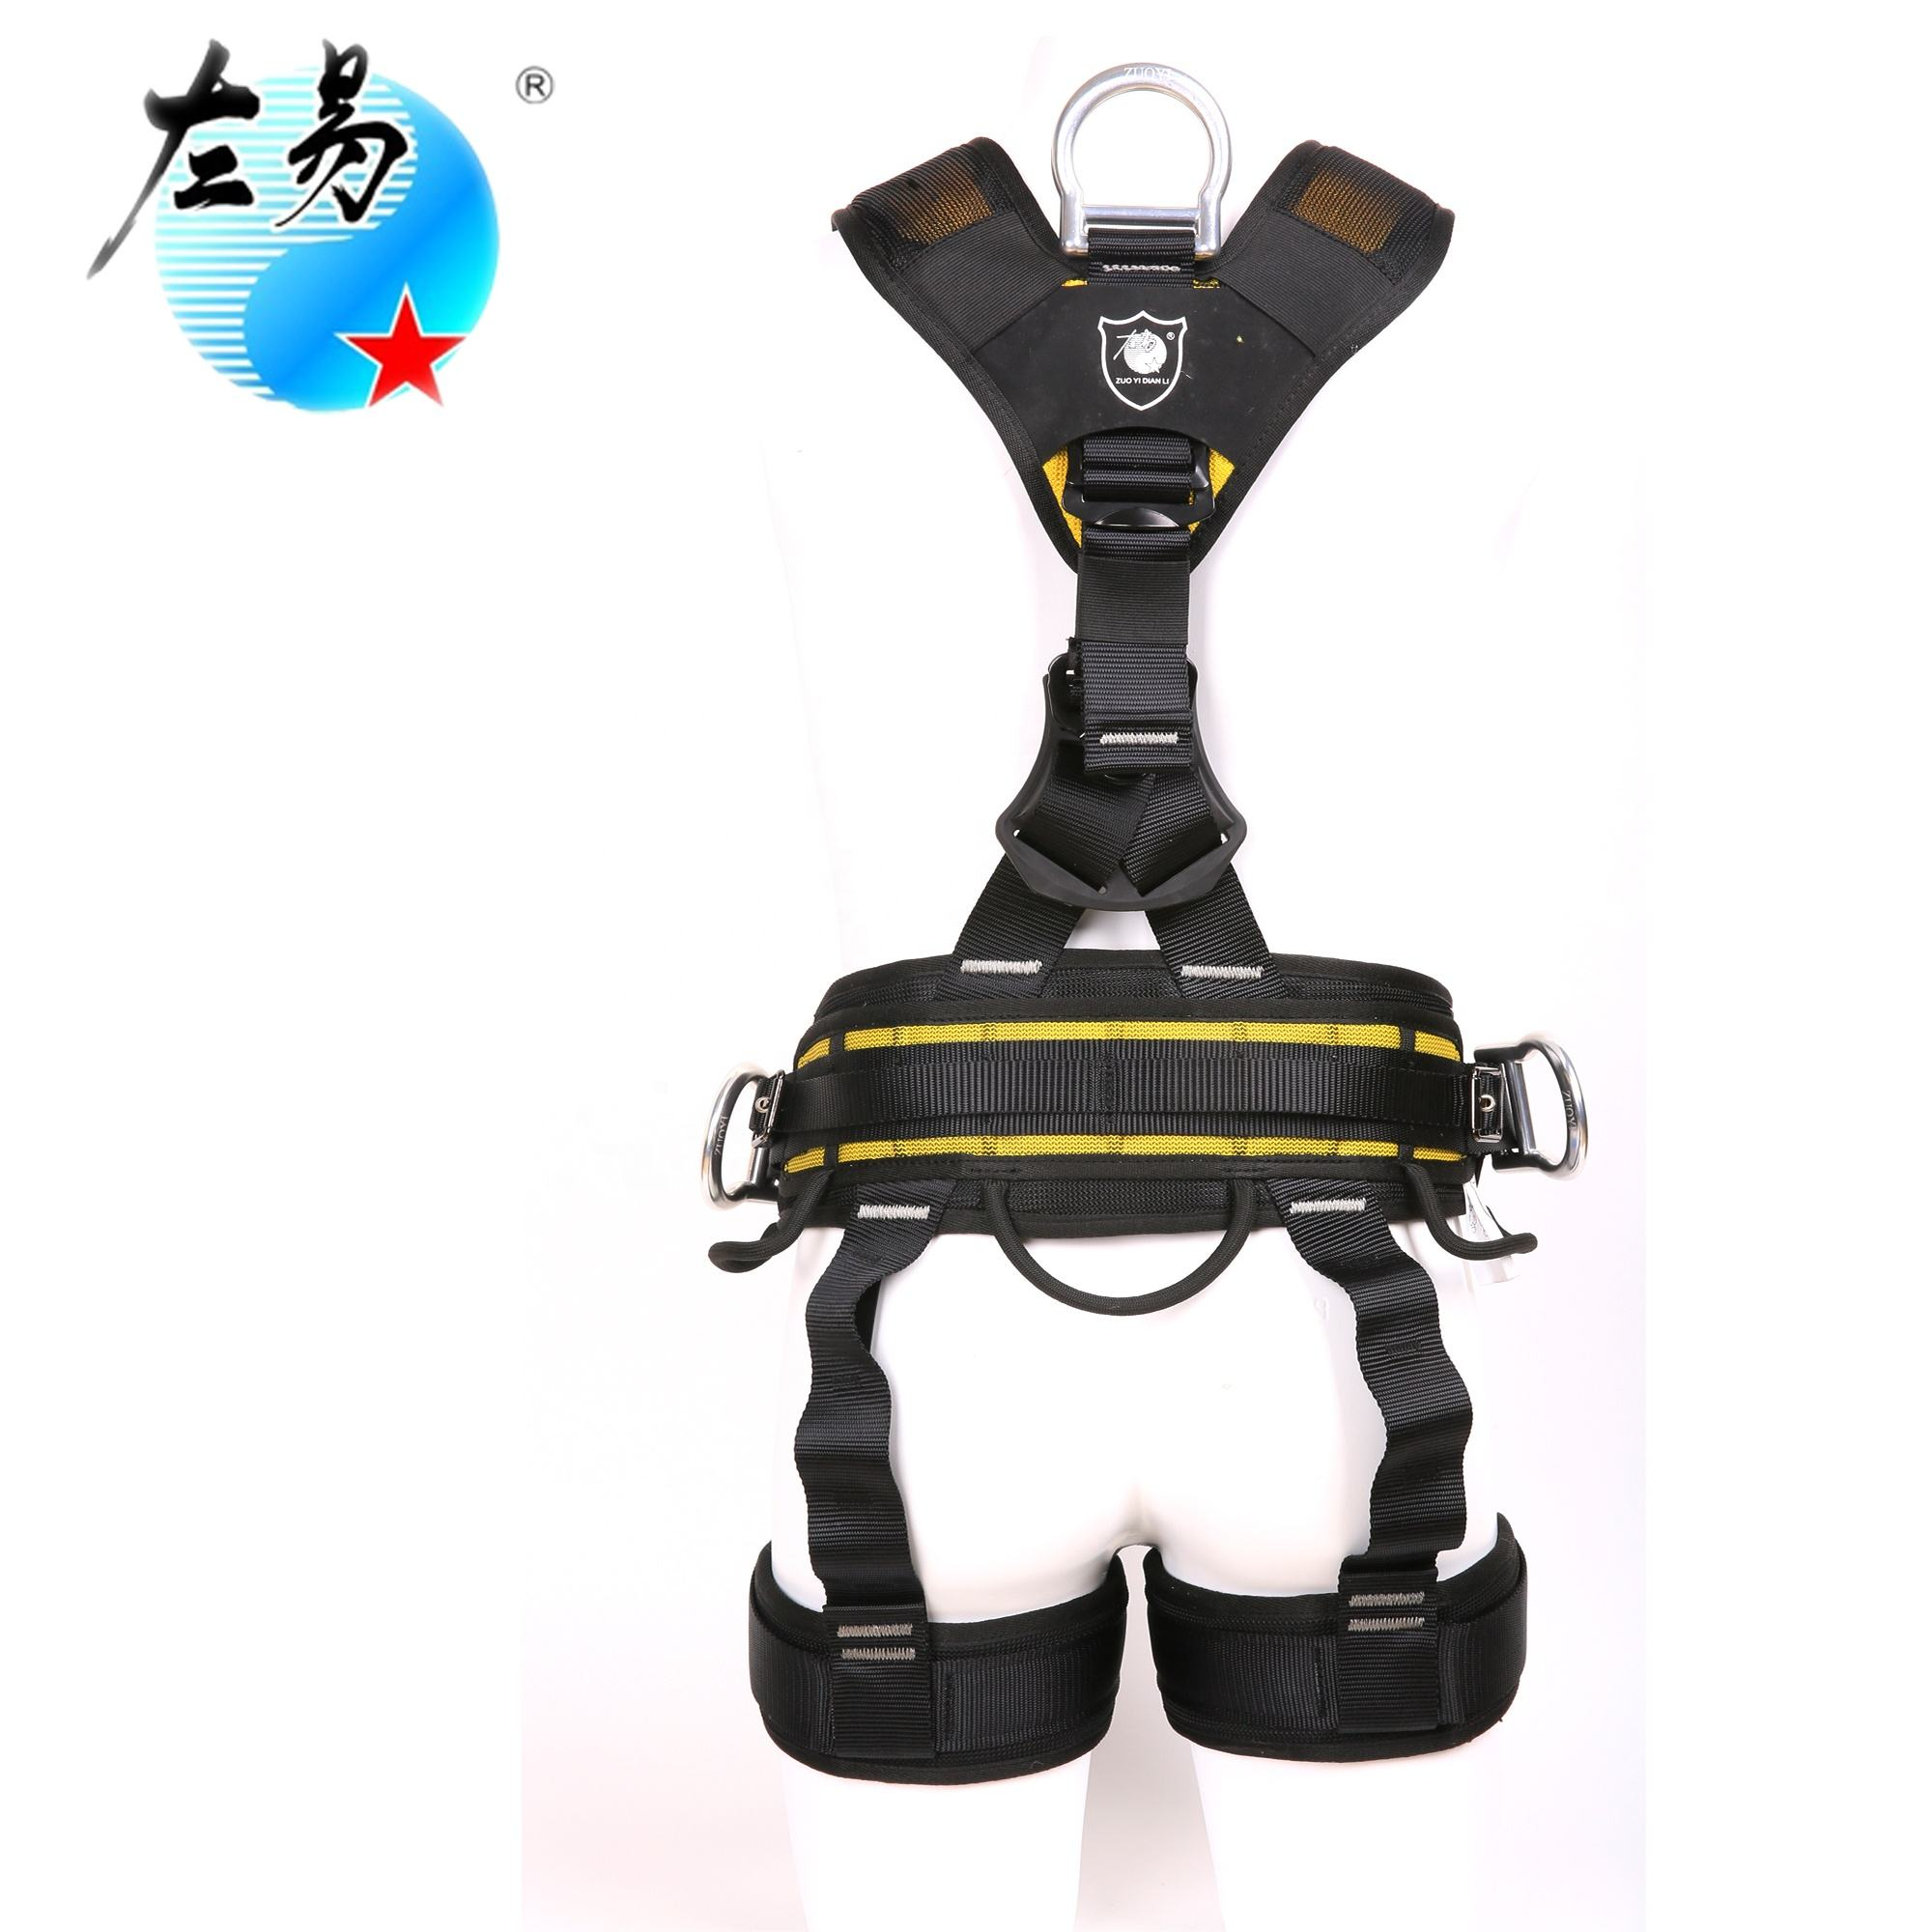 Mendaki Industri Retractable Jatuh 5-Point Lineman Shock Absorber China Listrik Safety Harness